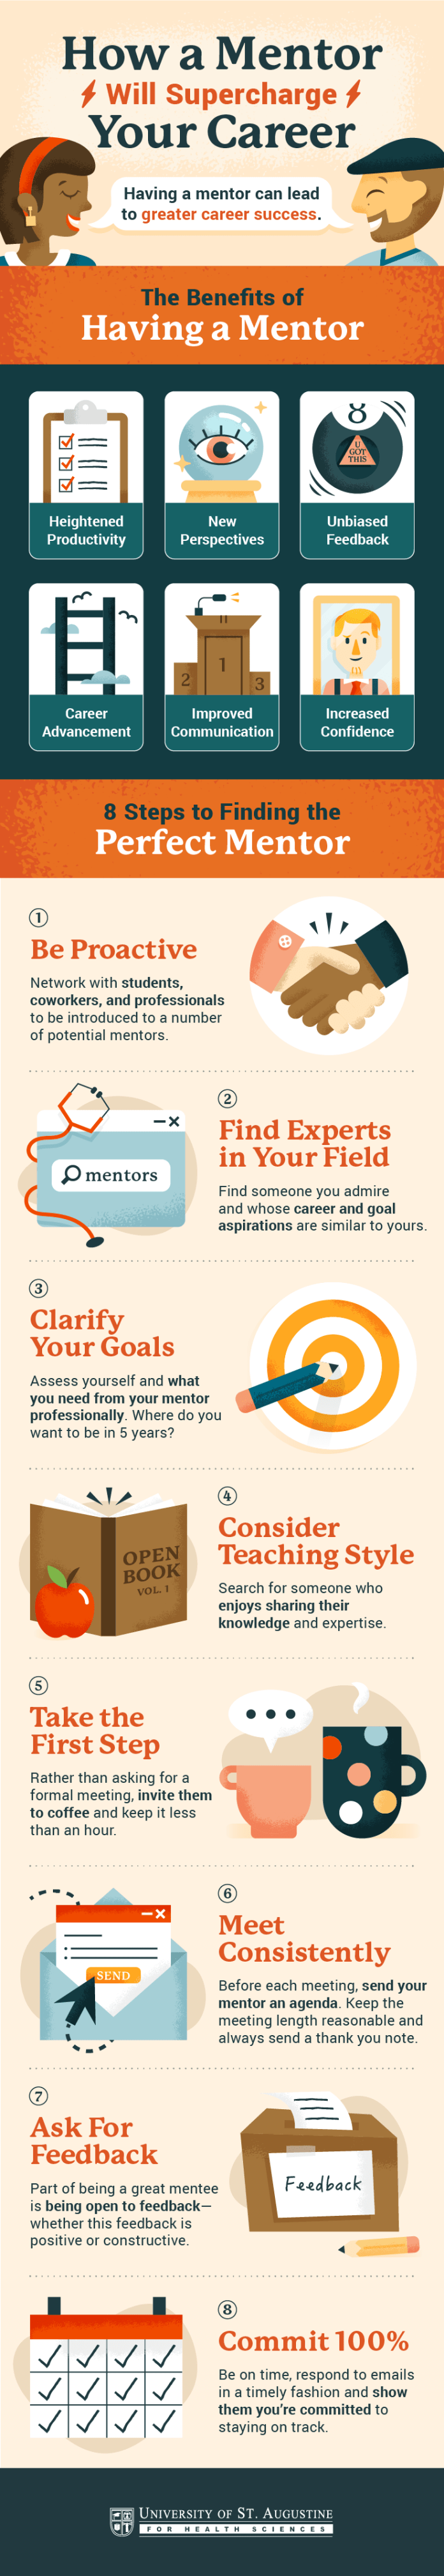 Female mentors in business infographic